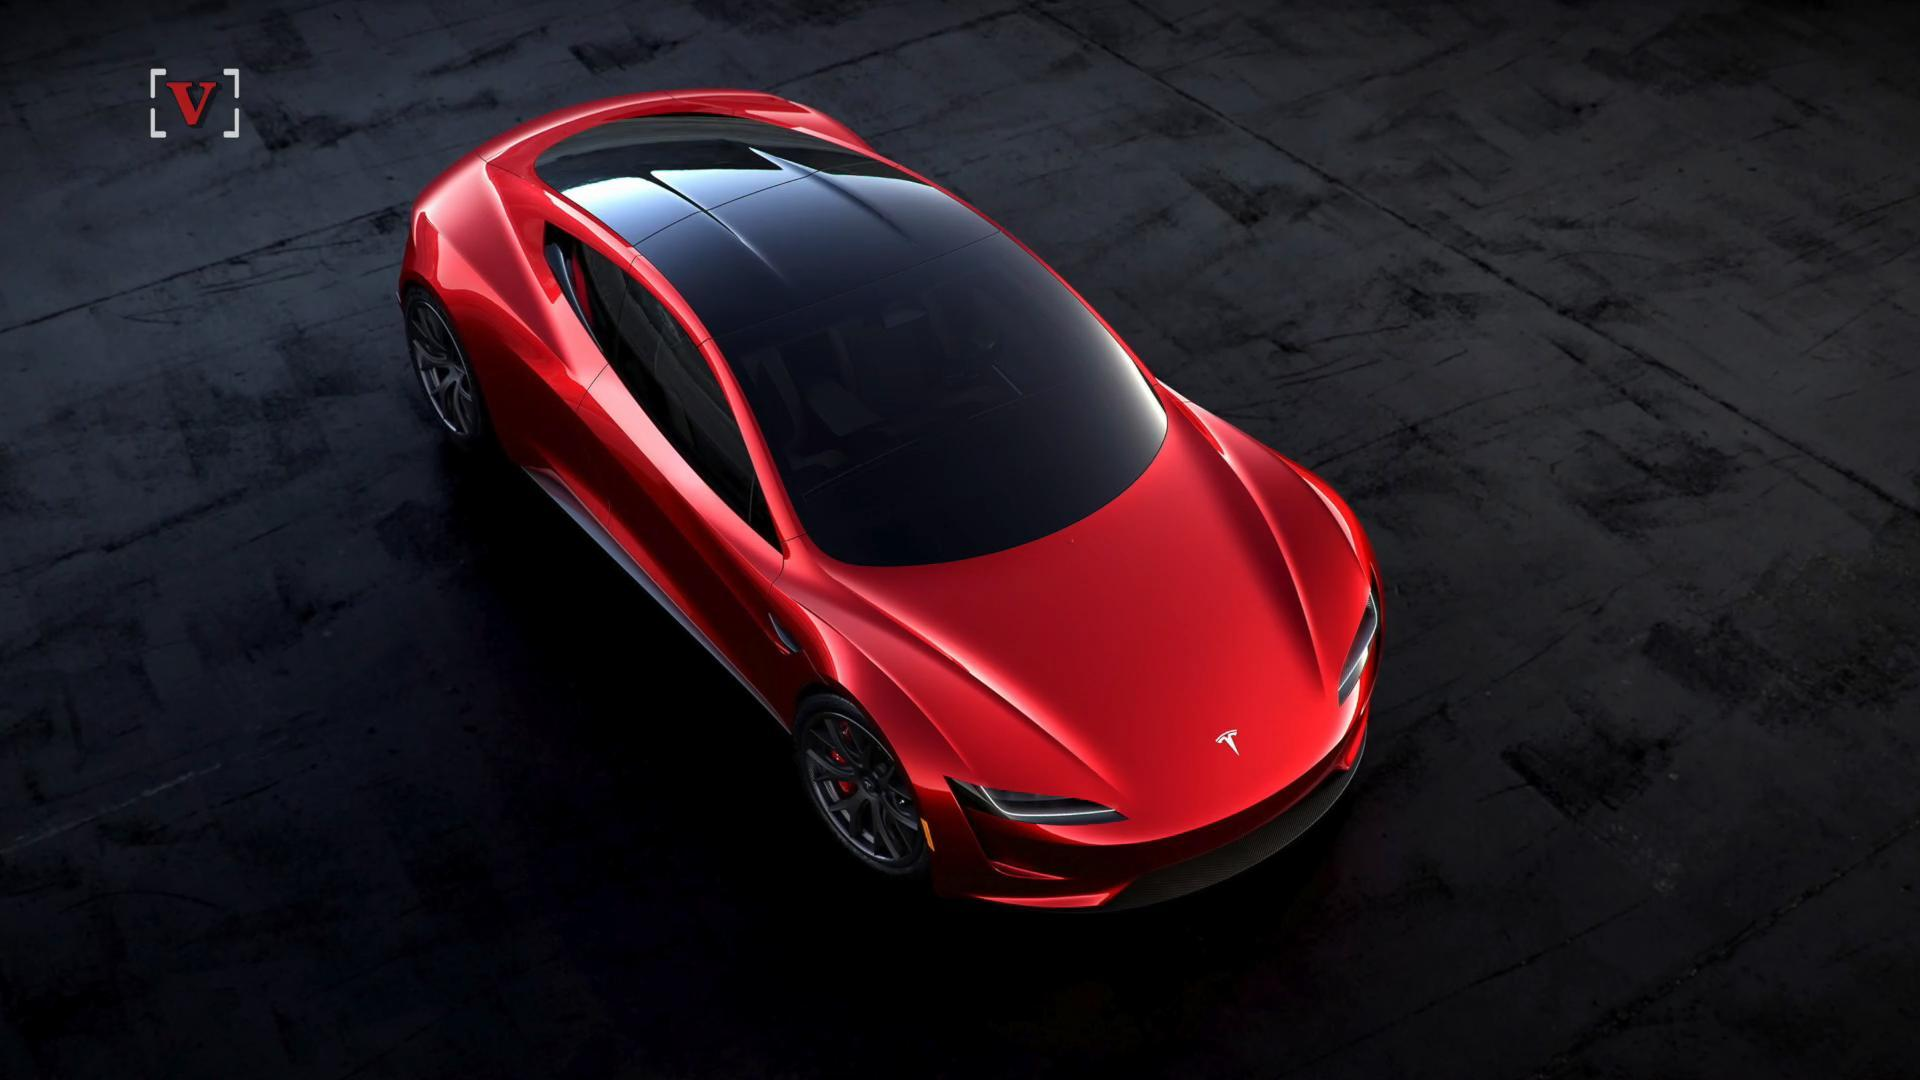 Elon Musk and Tesla Reveal the Fastest Production Car Ever Made